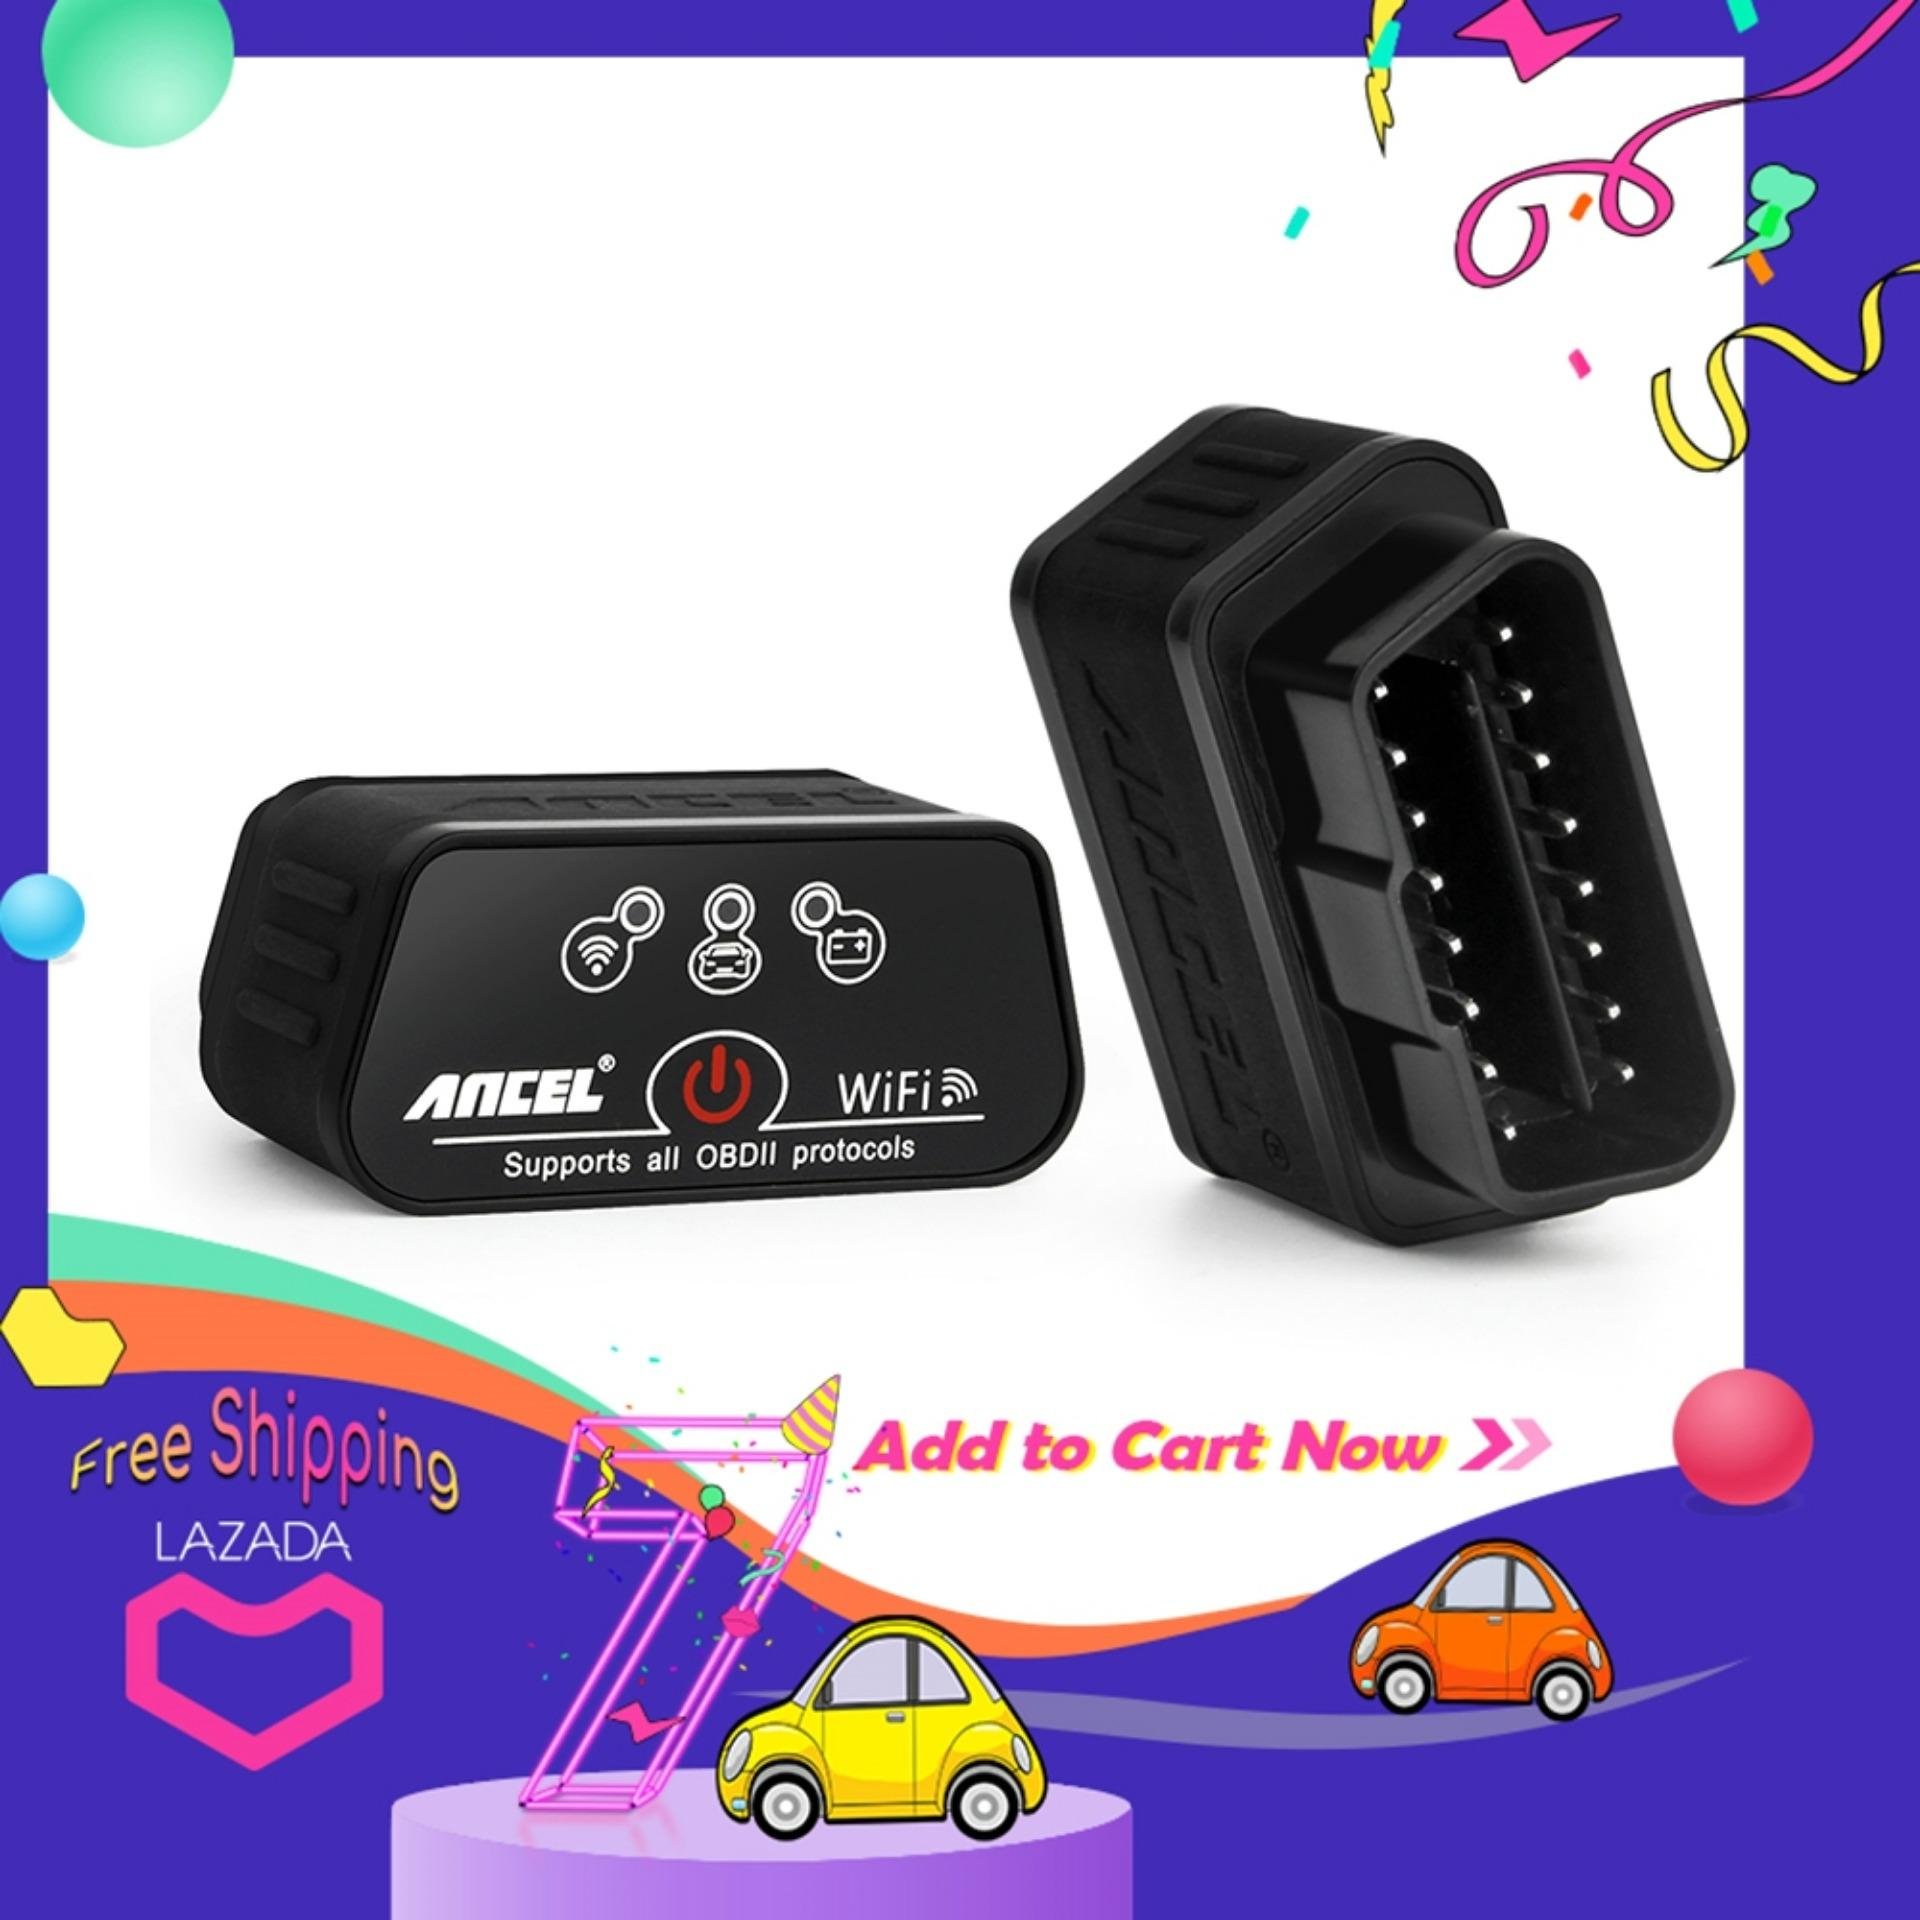 Ancel Icar2 Wifi Obd2 Diagnostic-Tool Elm327 Mini Wifi Obd 2 Scanner For Android/pc/ios Code Reader High Version Better Than Many Car Fault Detector Car Diagnostic Scanner Tool Like Elm 327 Elm327 By Obdspace Store.